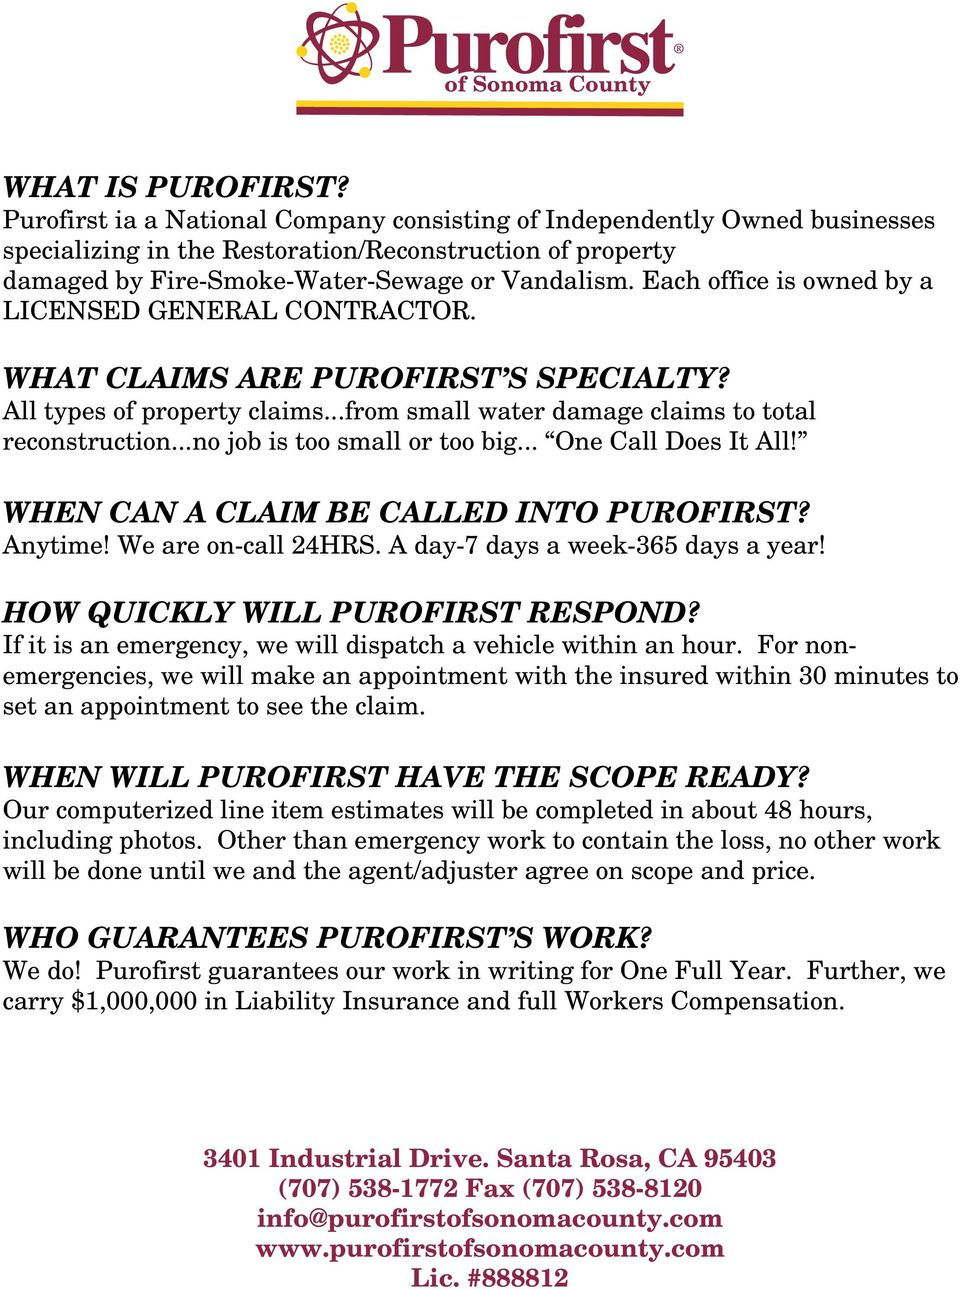 Each office is owned by a LICENSED GENERAL CONTRACTOR. WHAT CLAIMS ARE PUROFIRST S SPECIALTY? All types of property claims...from small water damage claims to total reconstruction.